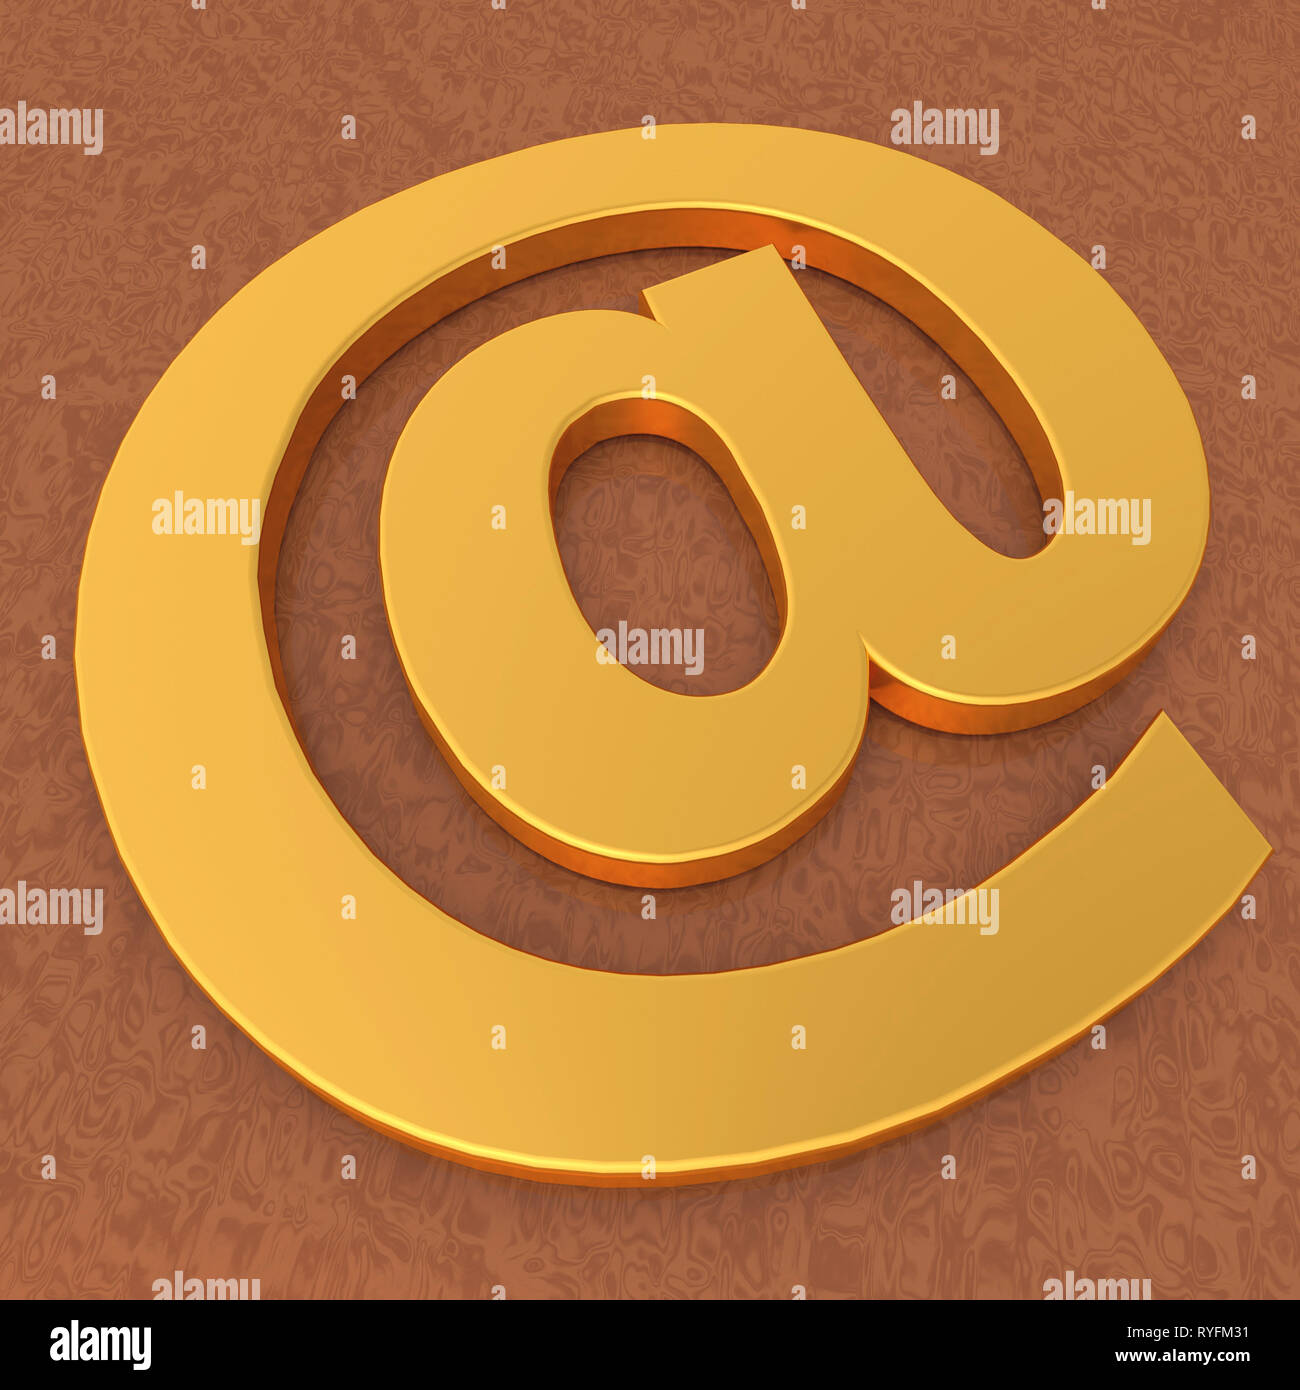 Gold Email Symbol with 3D Render illustration - Stock Image